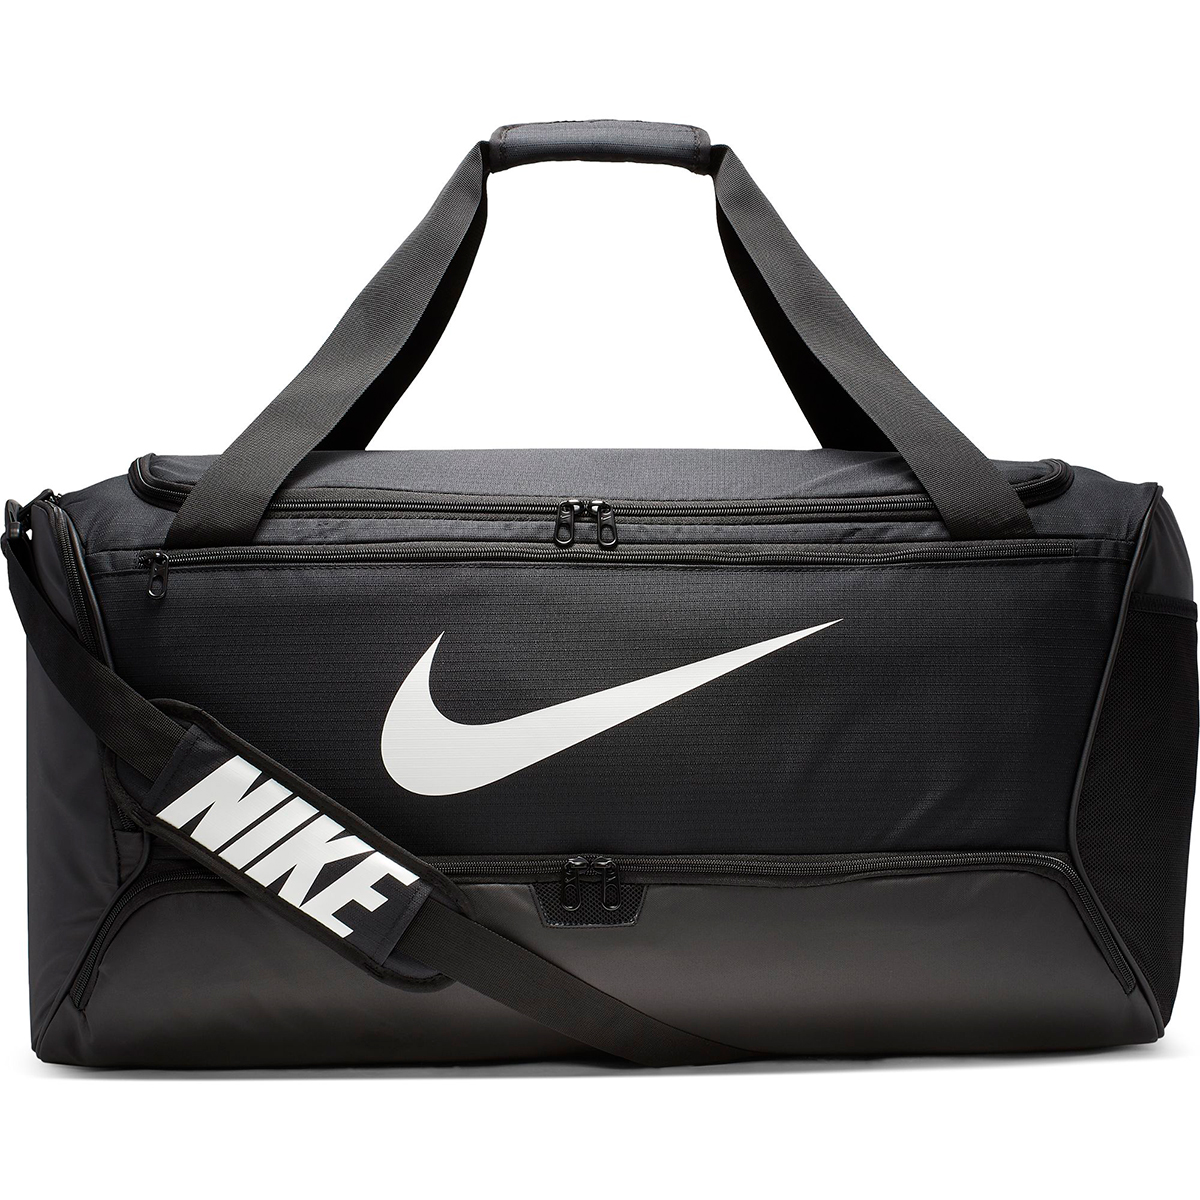 Nike Brasilia Training Duffel Bag, Large